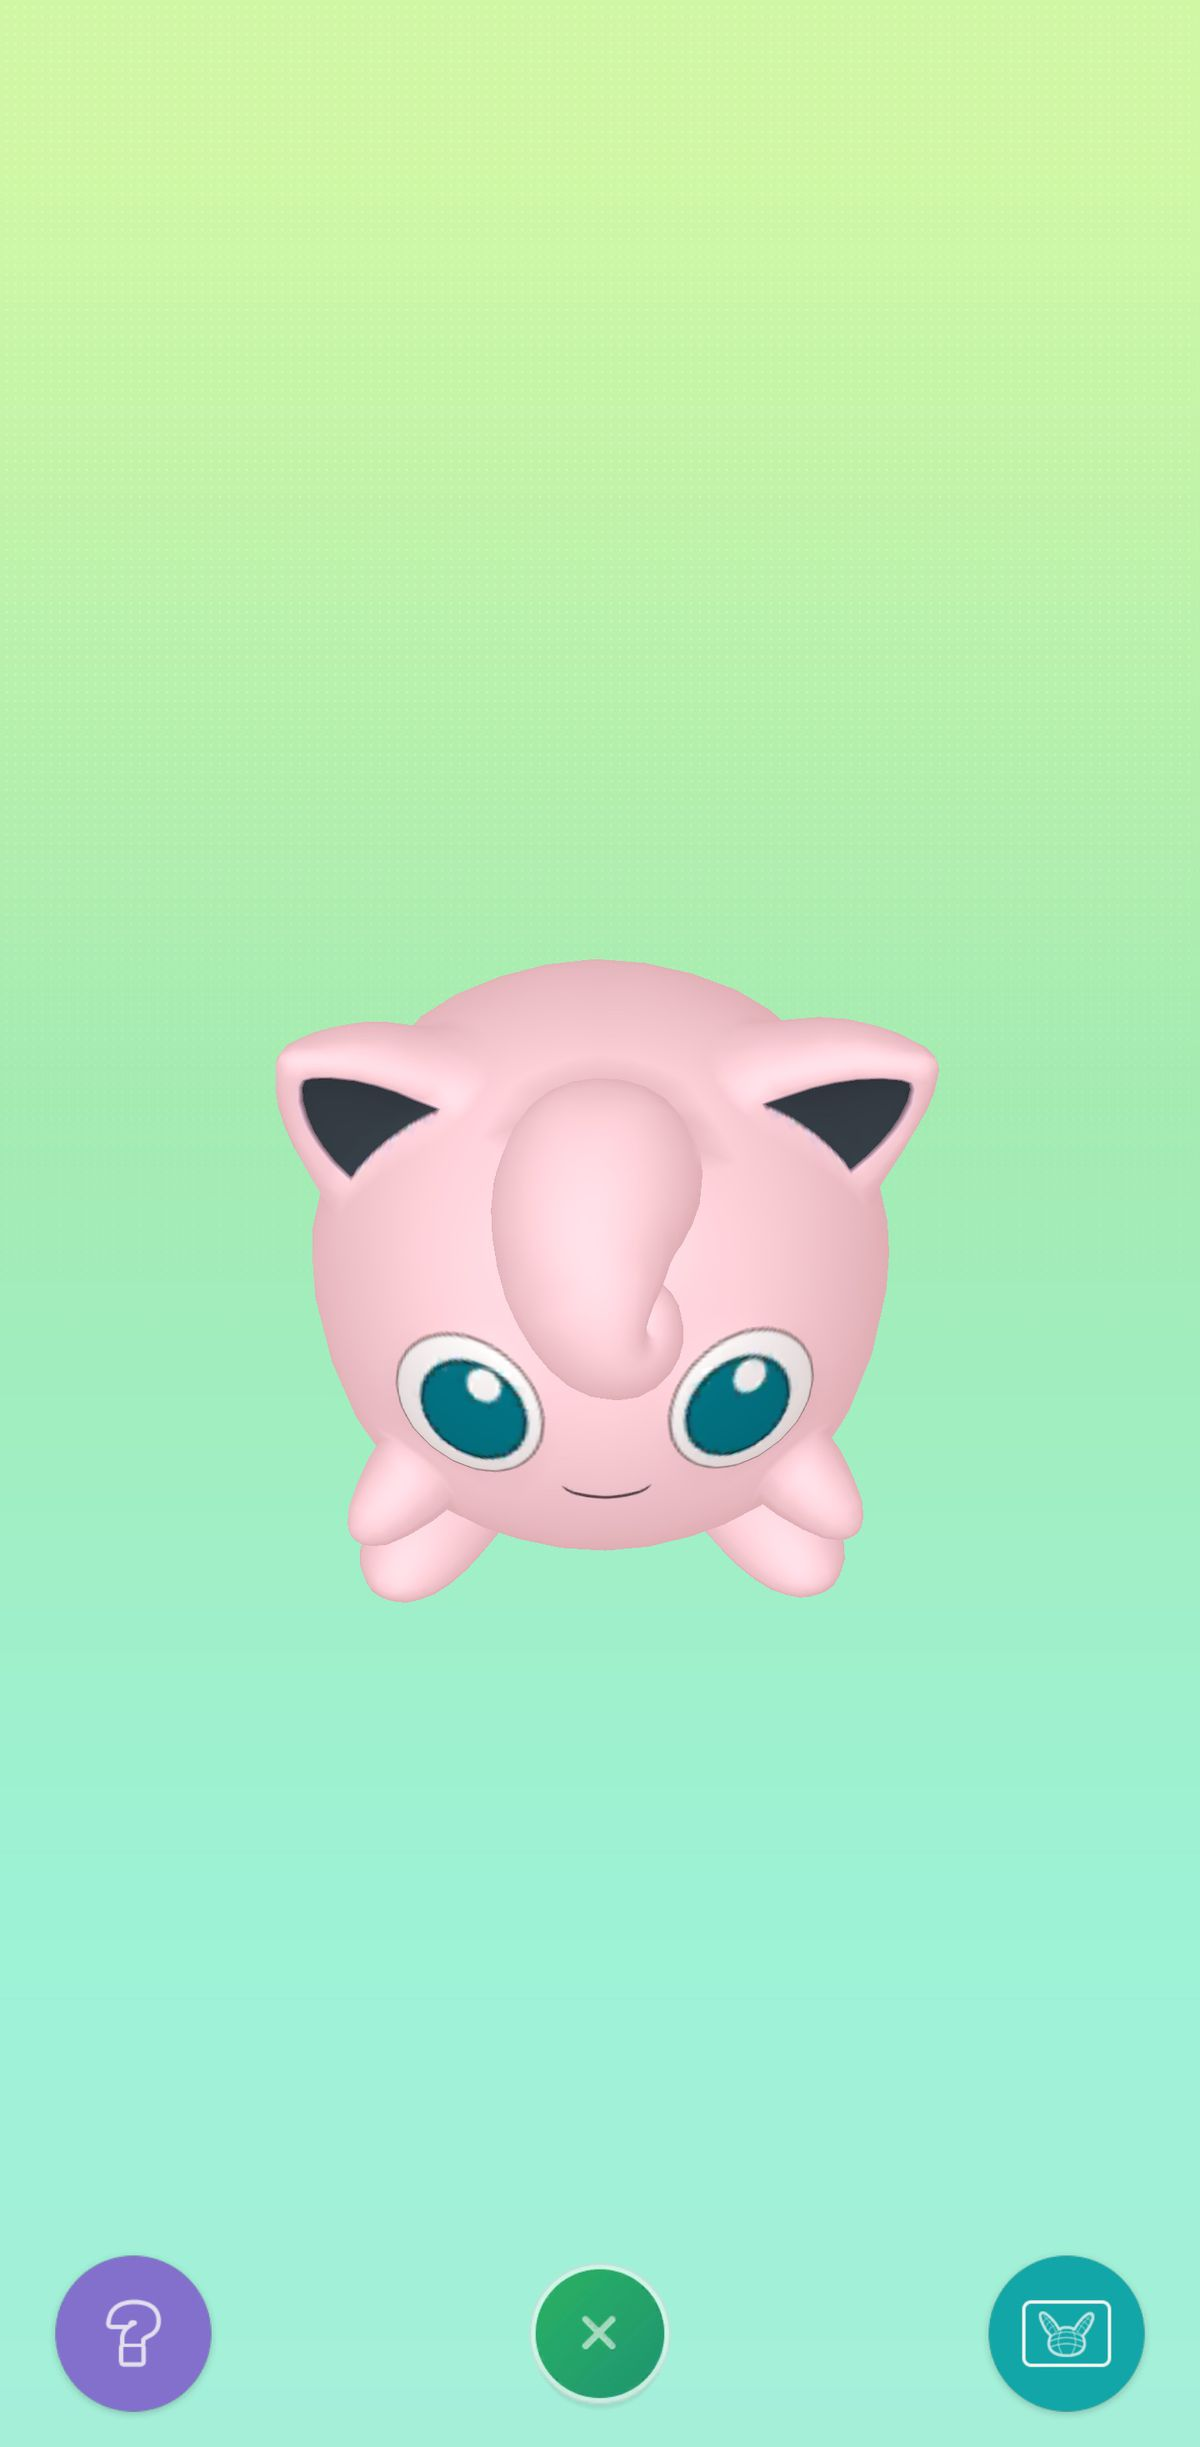 Jigglypuff viewed from above in Pokémon Home